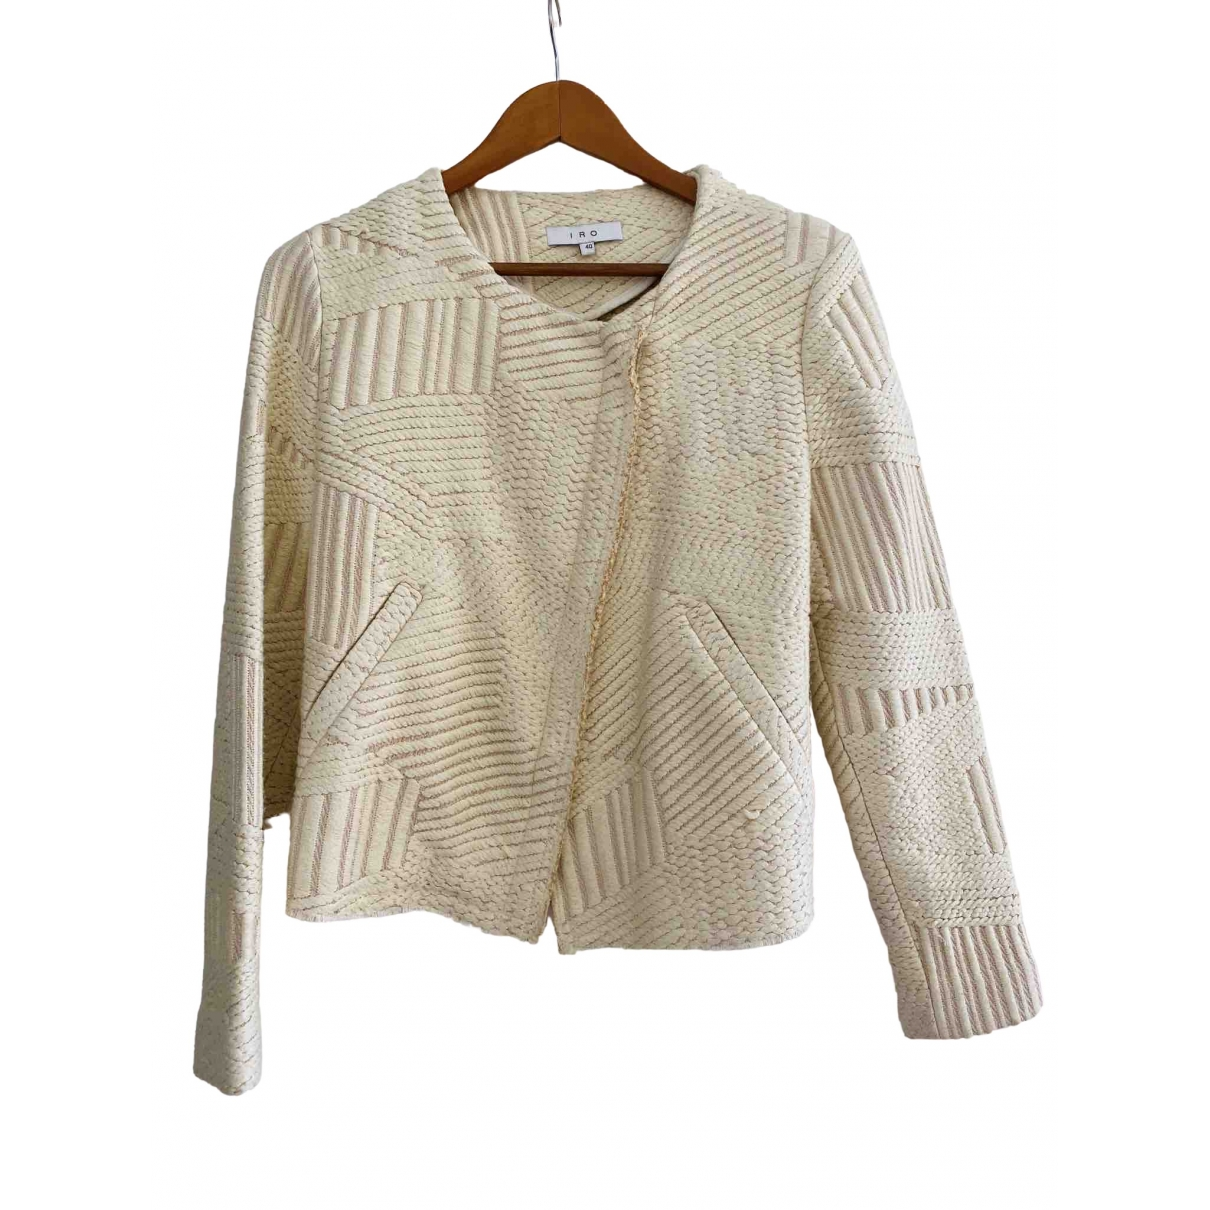 Iro \N Beige Linen jacket for Women 40 FR